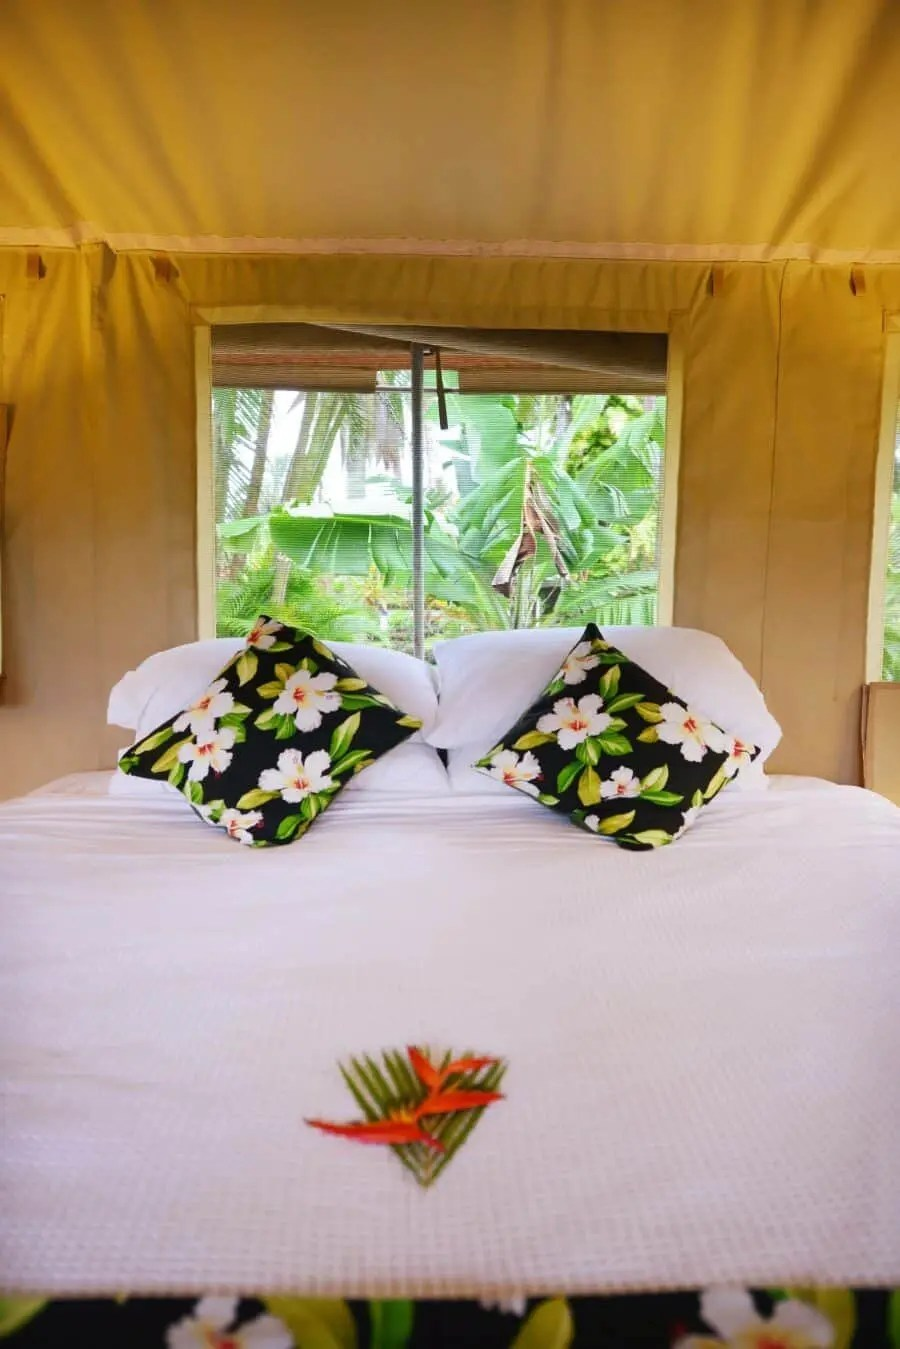 ikurangi-eco-retreat-rarotonga-cook-islands-20